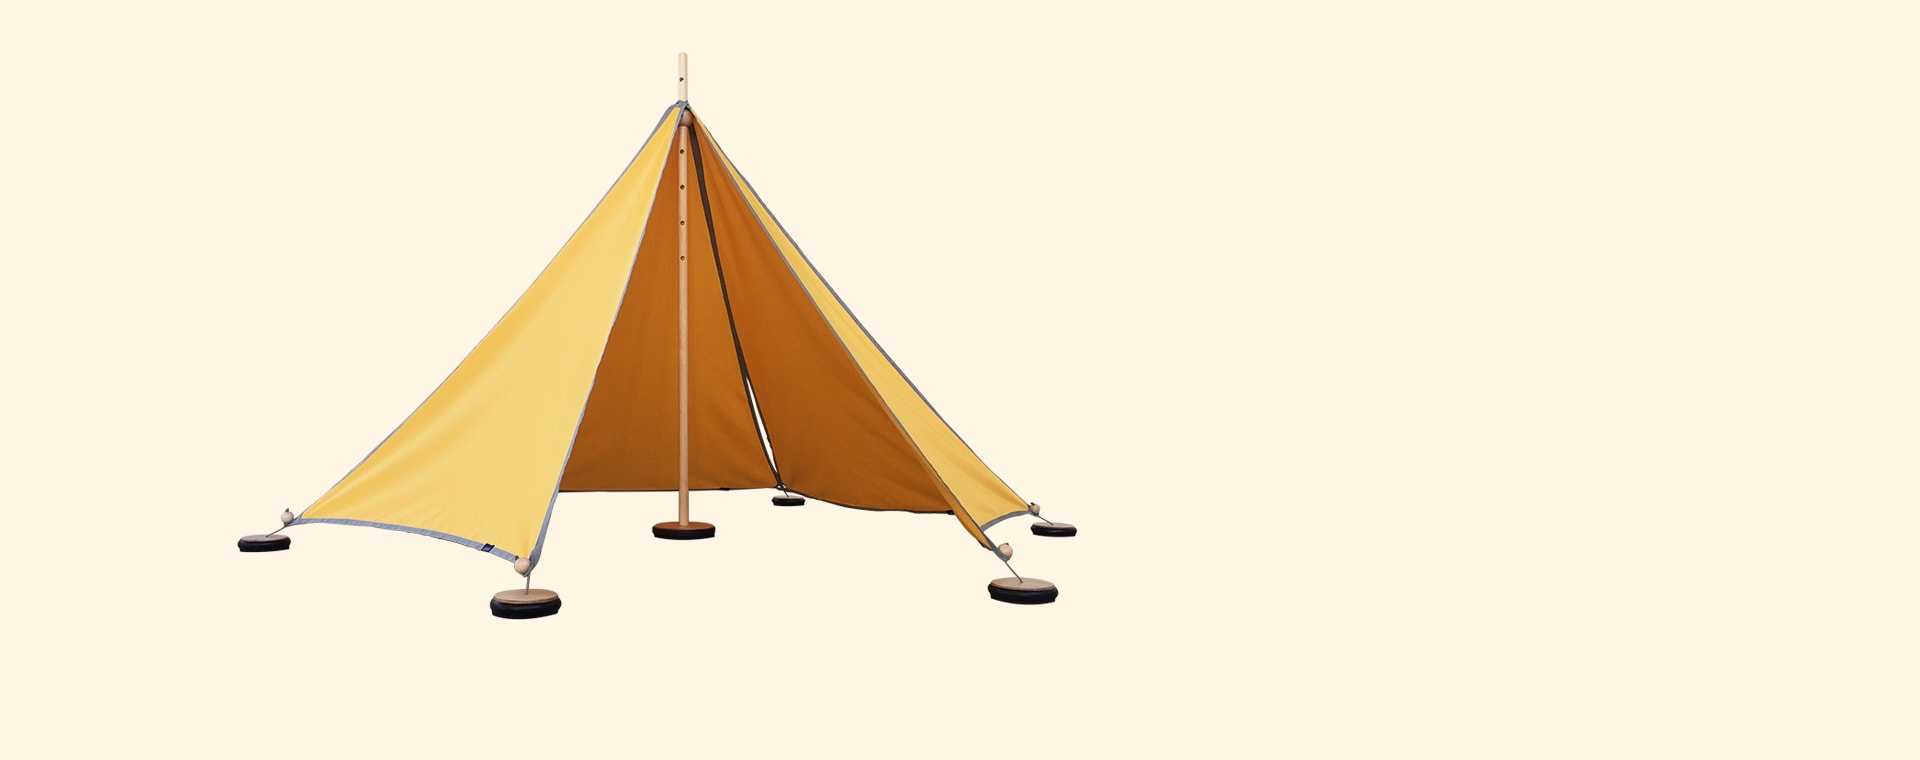 Yellow abel Small Tent with Pegs & Weights